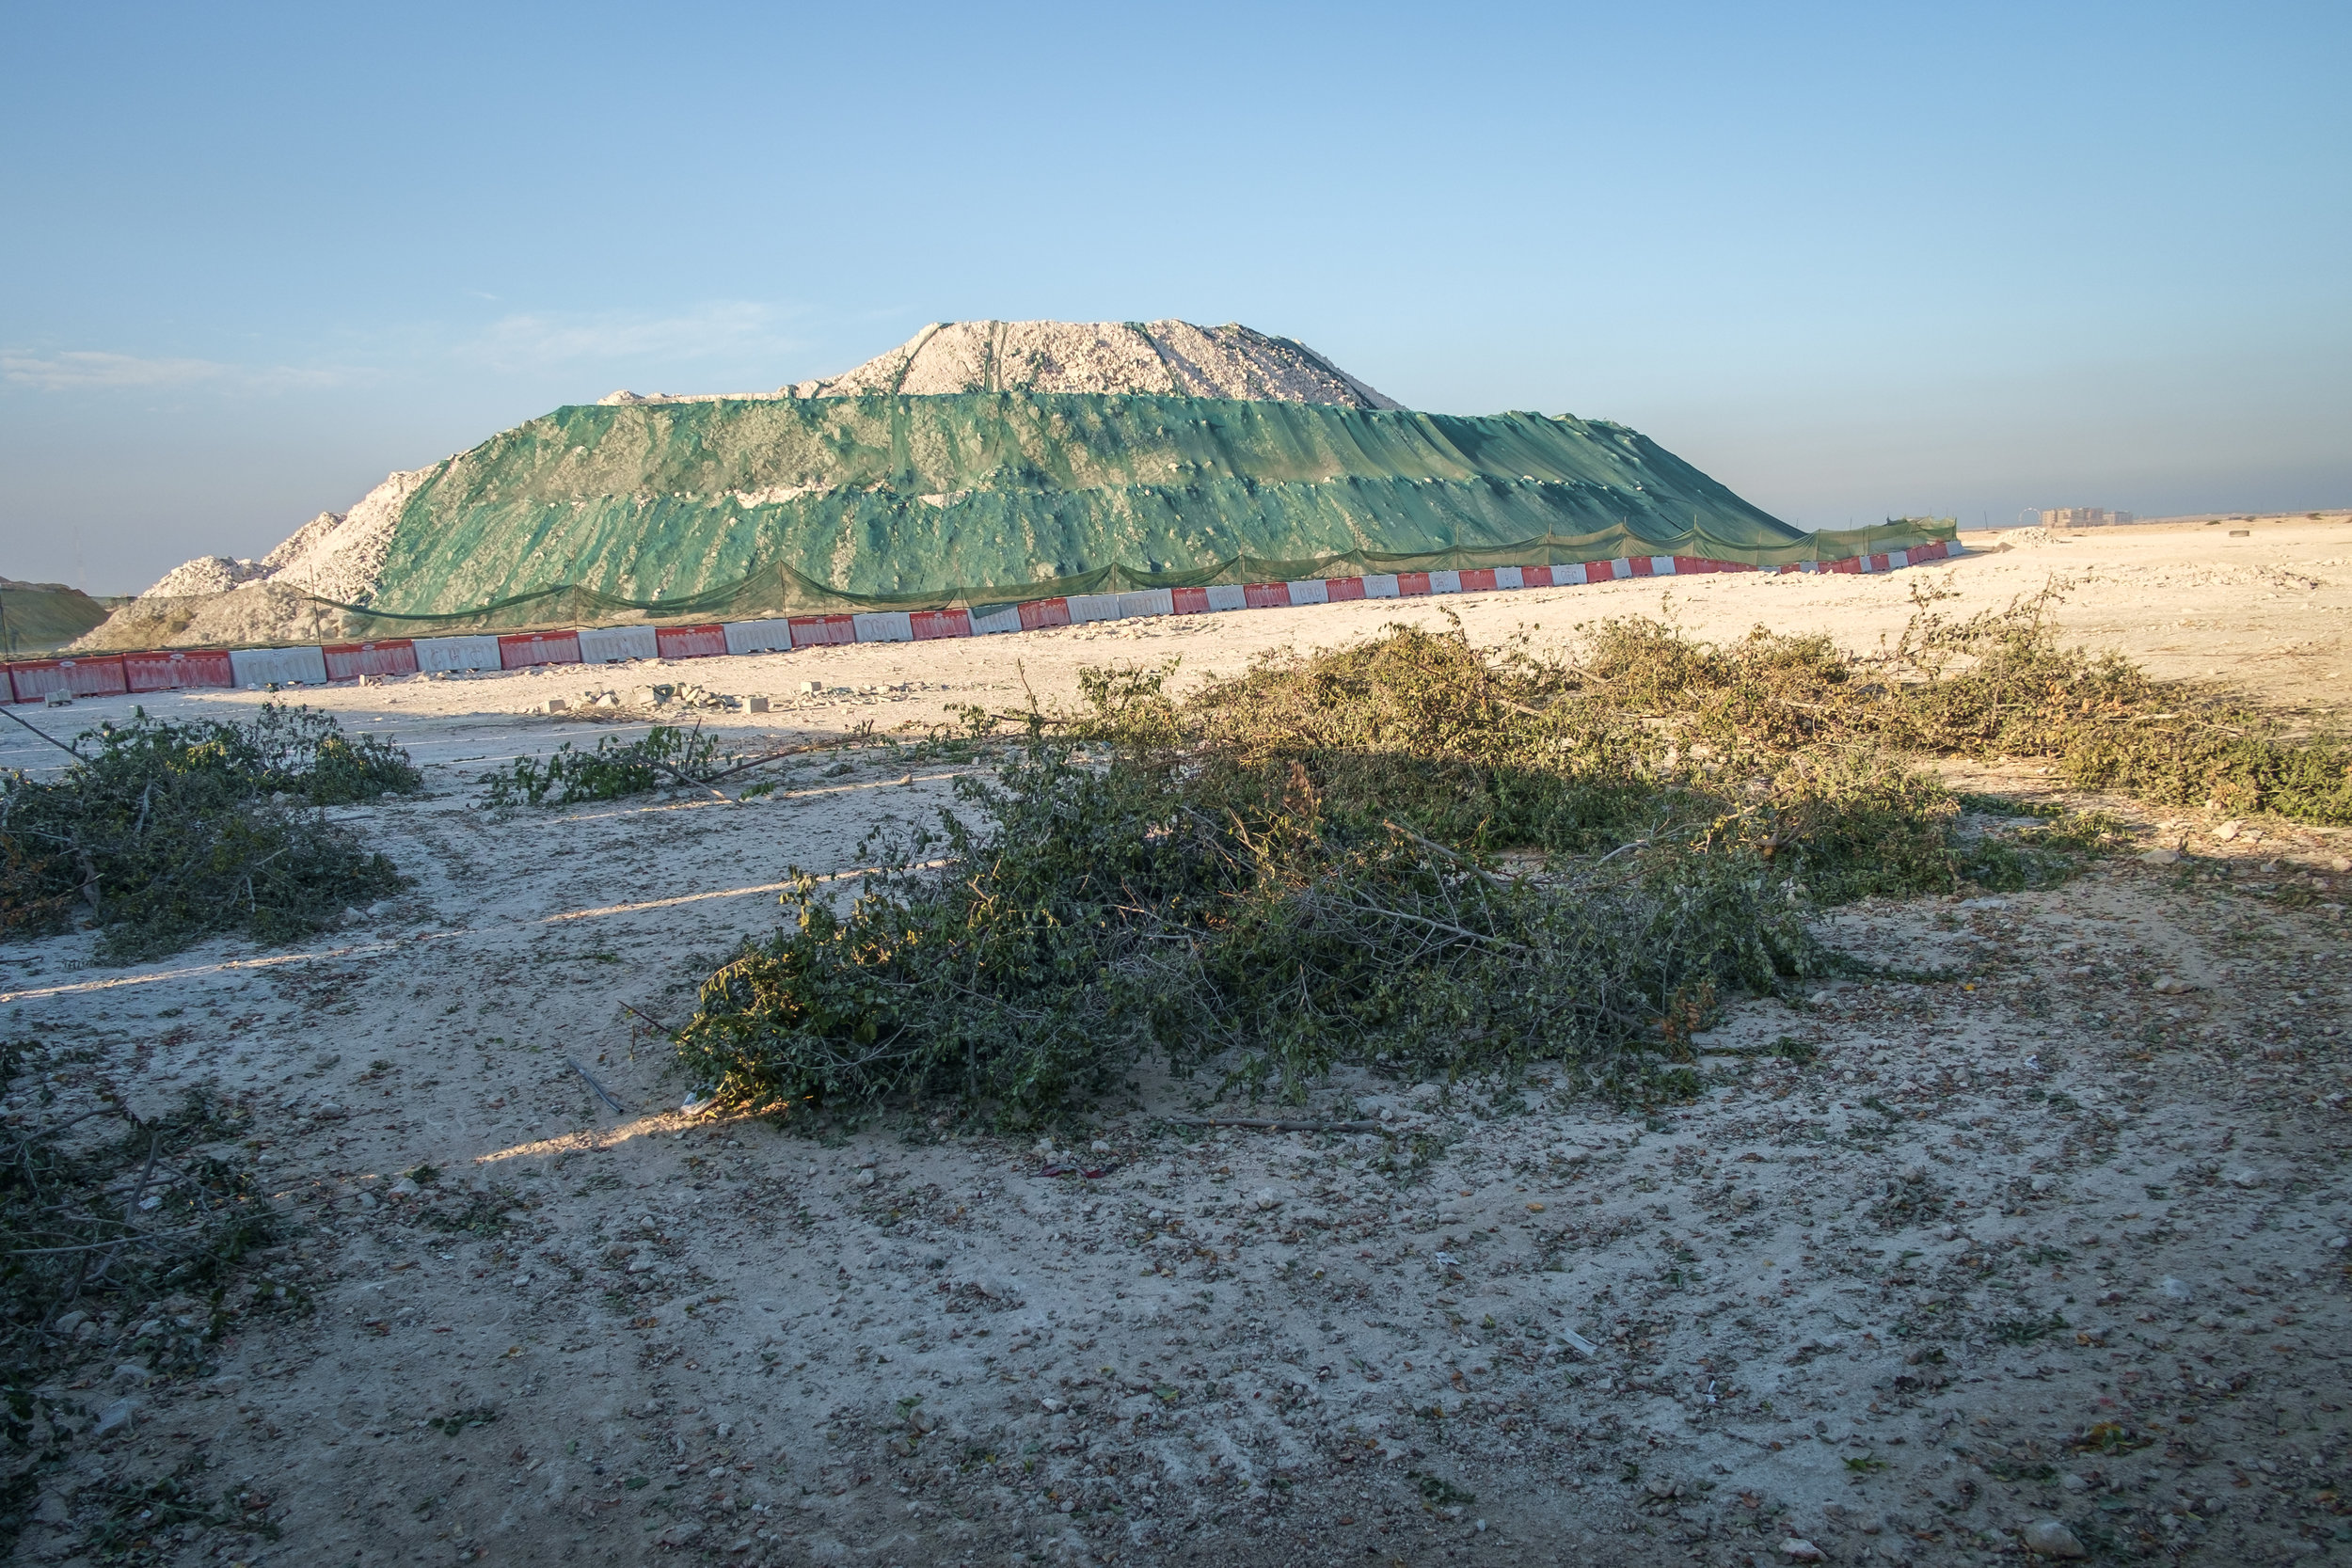 A massive mound of dirt and rock, echoing a half-built pyramid, is seen at a construction site just north of Doha.